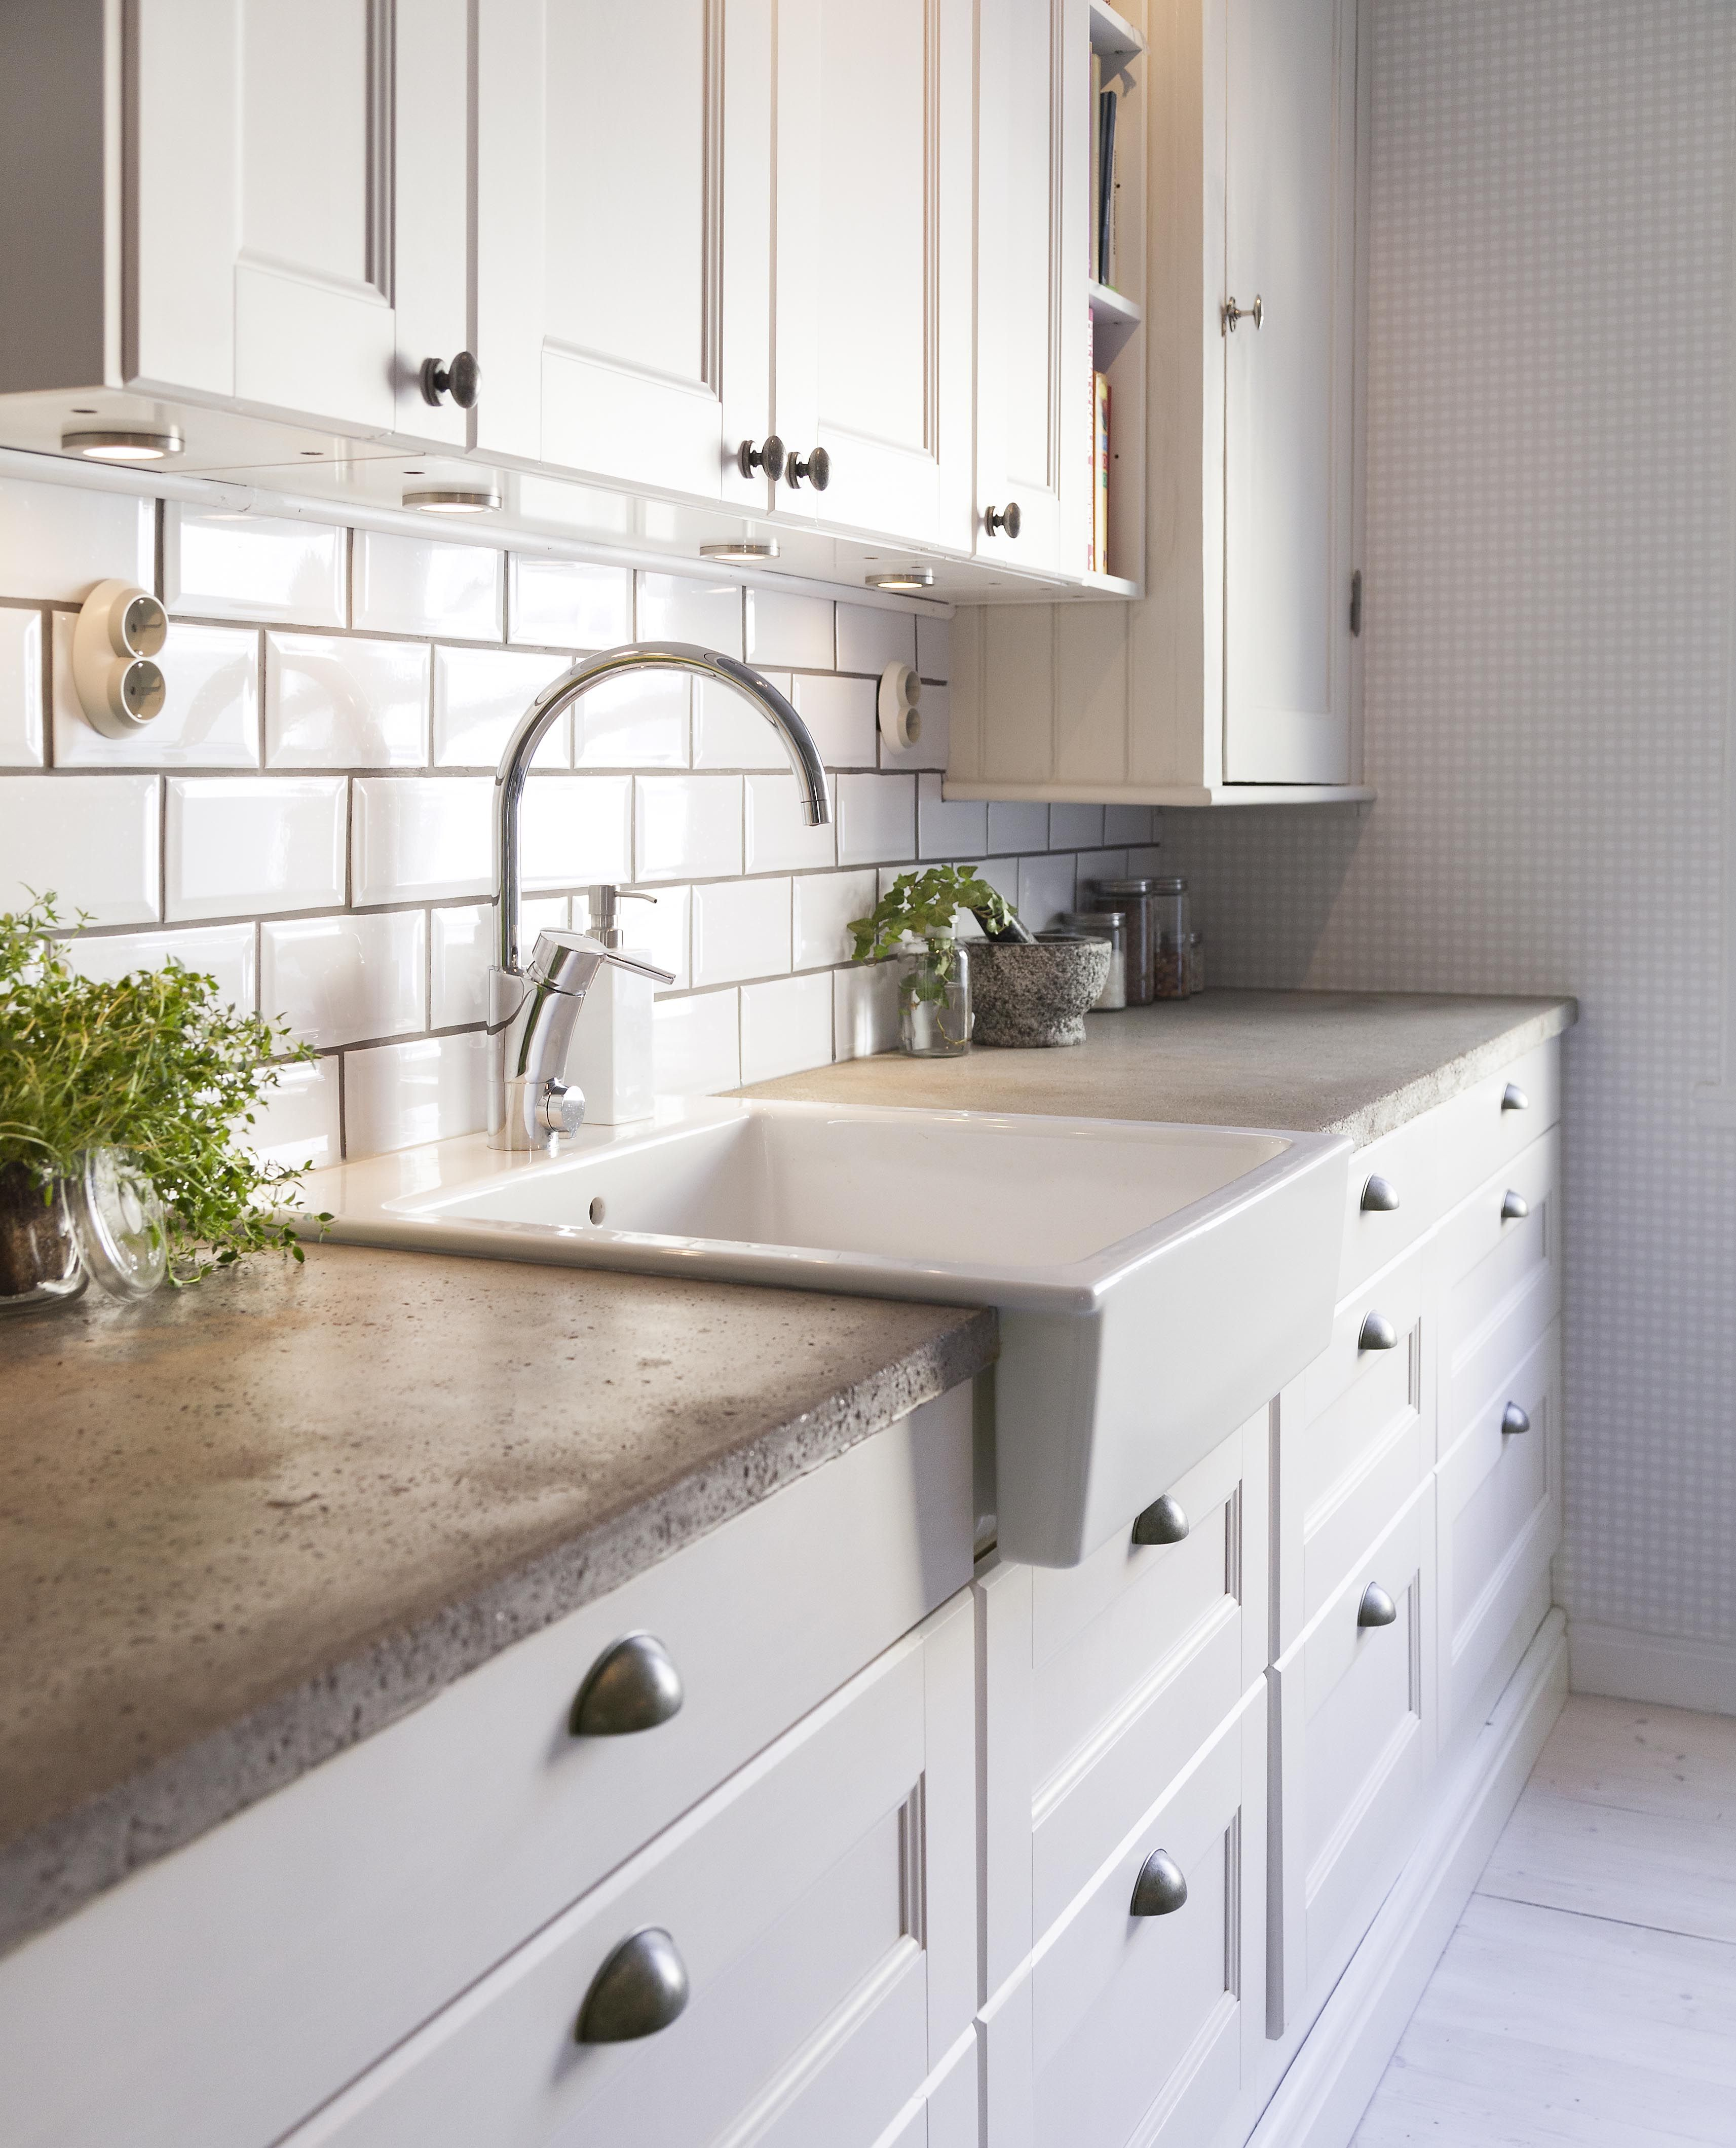 Pin By Nicole Trudeau On Home Stylish Kitchen Concrete Countertops Kitchen Concrete Kitchen